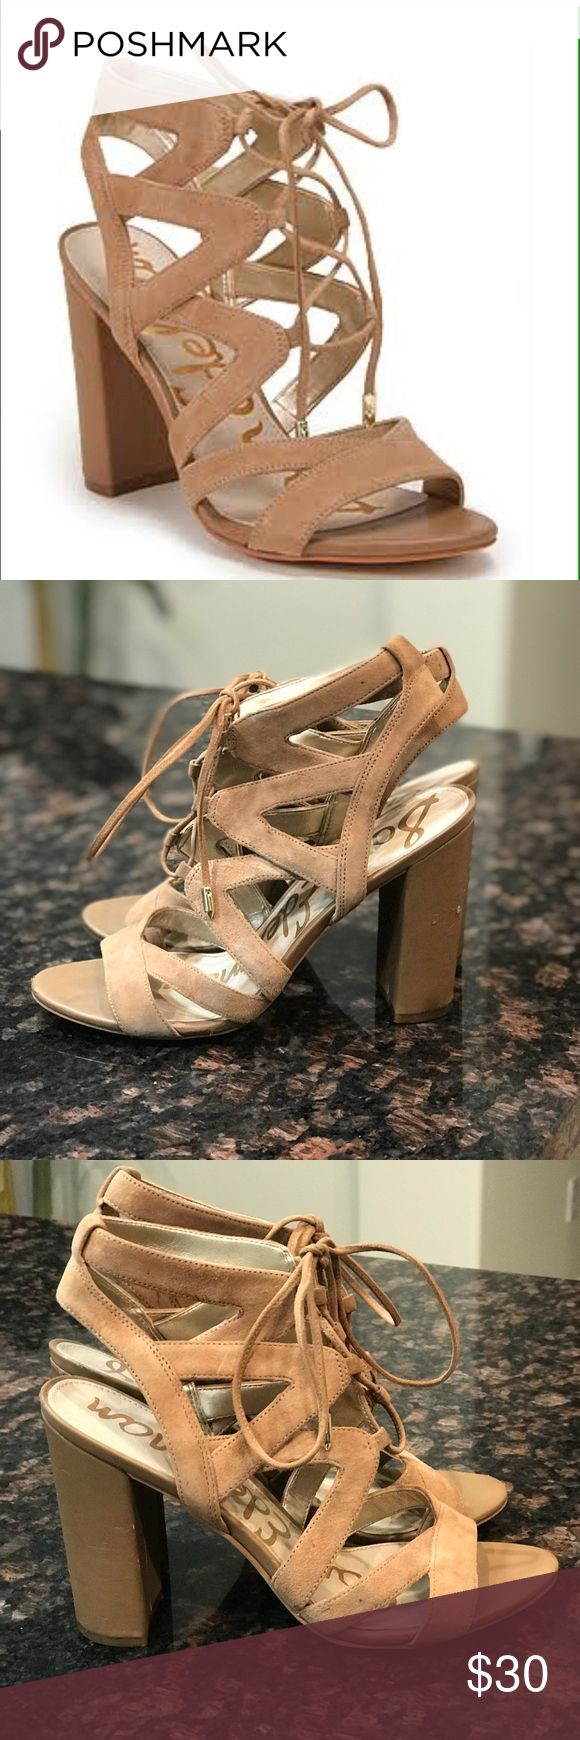 Sam Edelman Yardley Lace Up Sandals Sam Edelman Yardley Lace Up Sandals. Size 7.5. These have been worn and have signs of wear. There are several scuffs on the heels and toes.  Well loved. I loved them so much I bought new ones! Sam Edelman Shoes Sandals